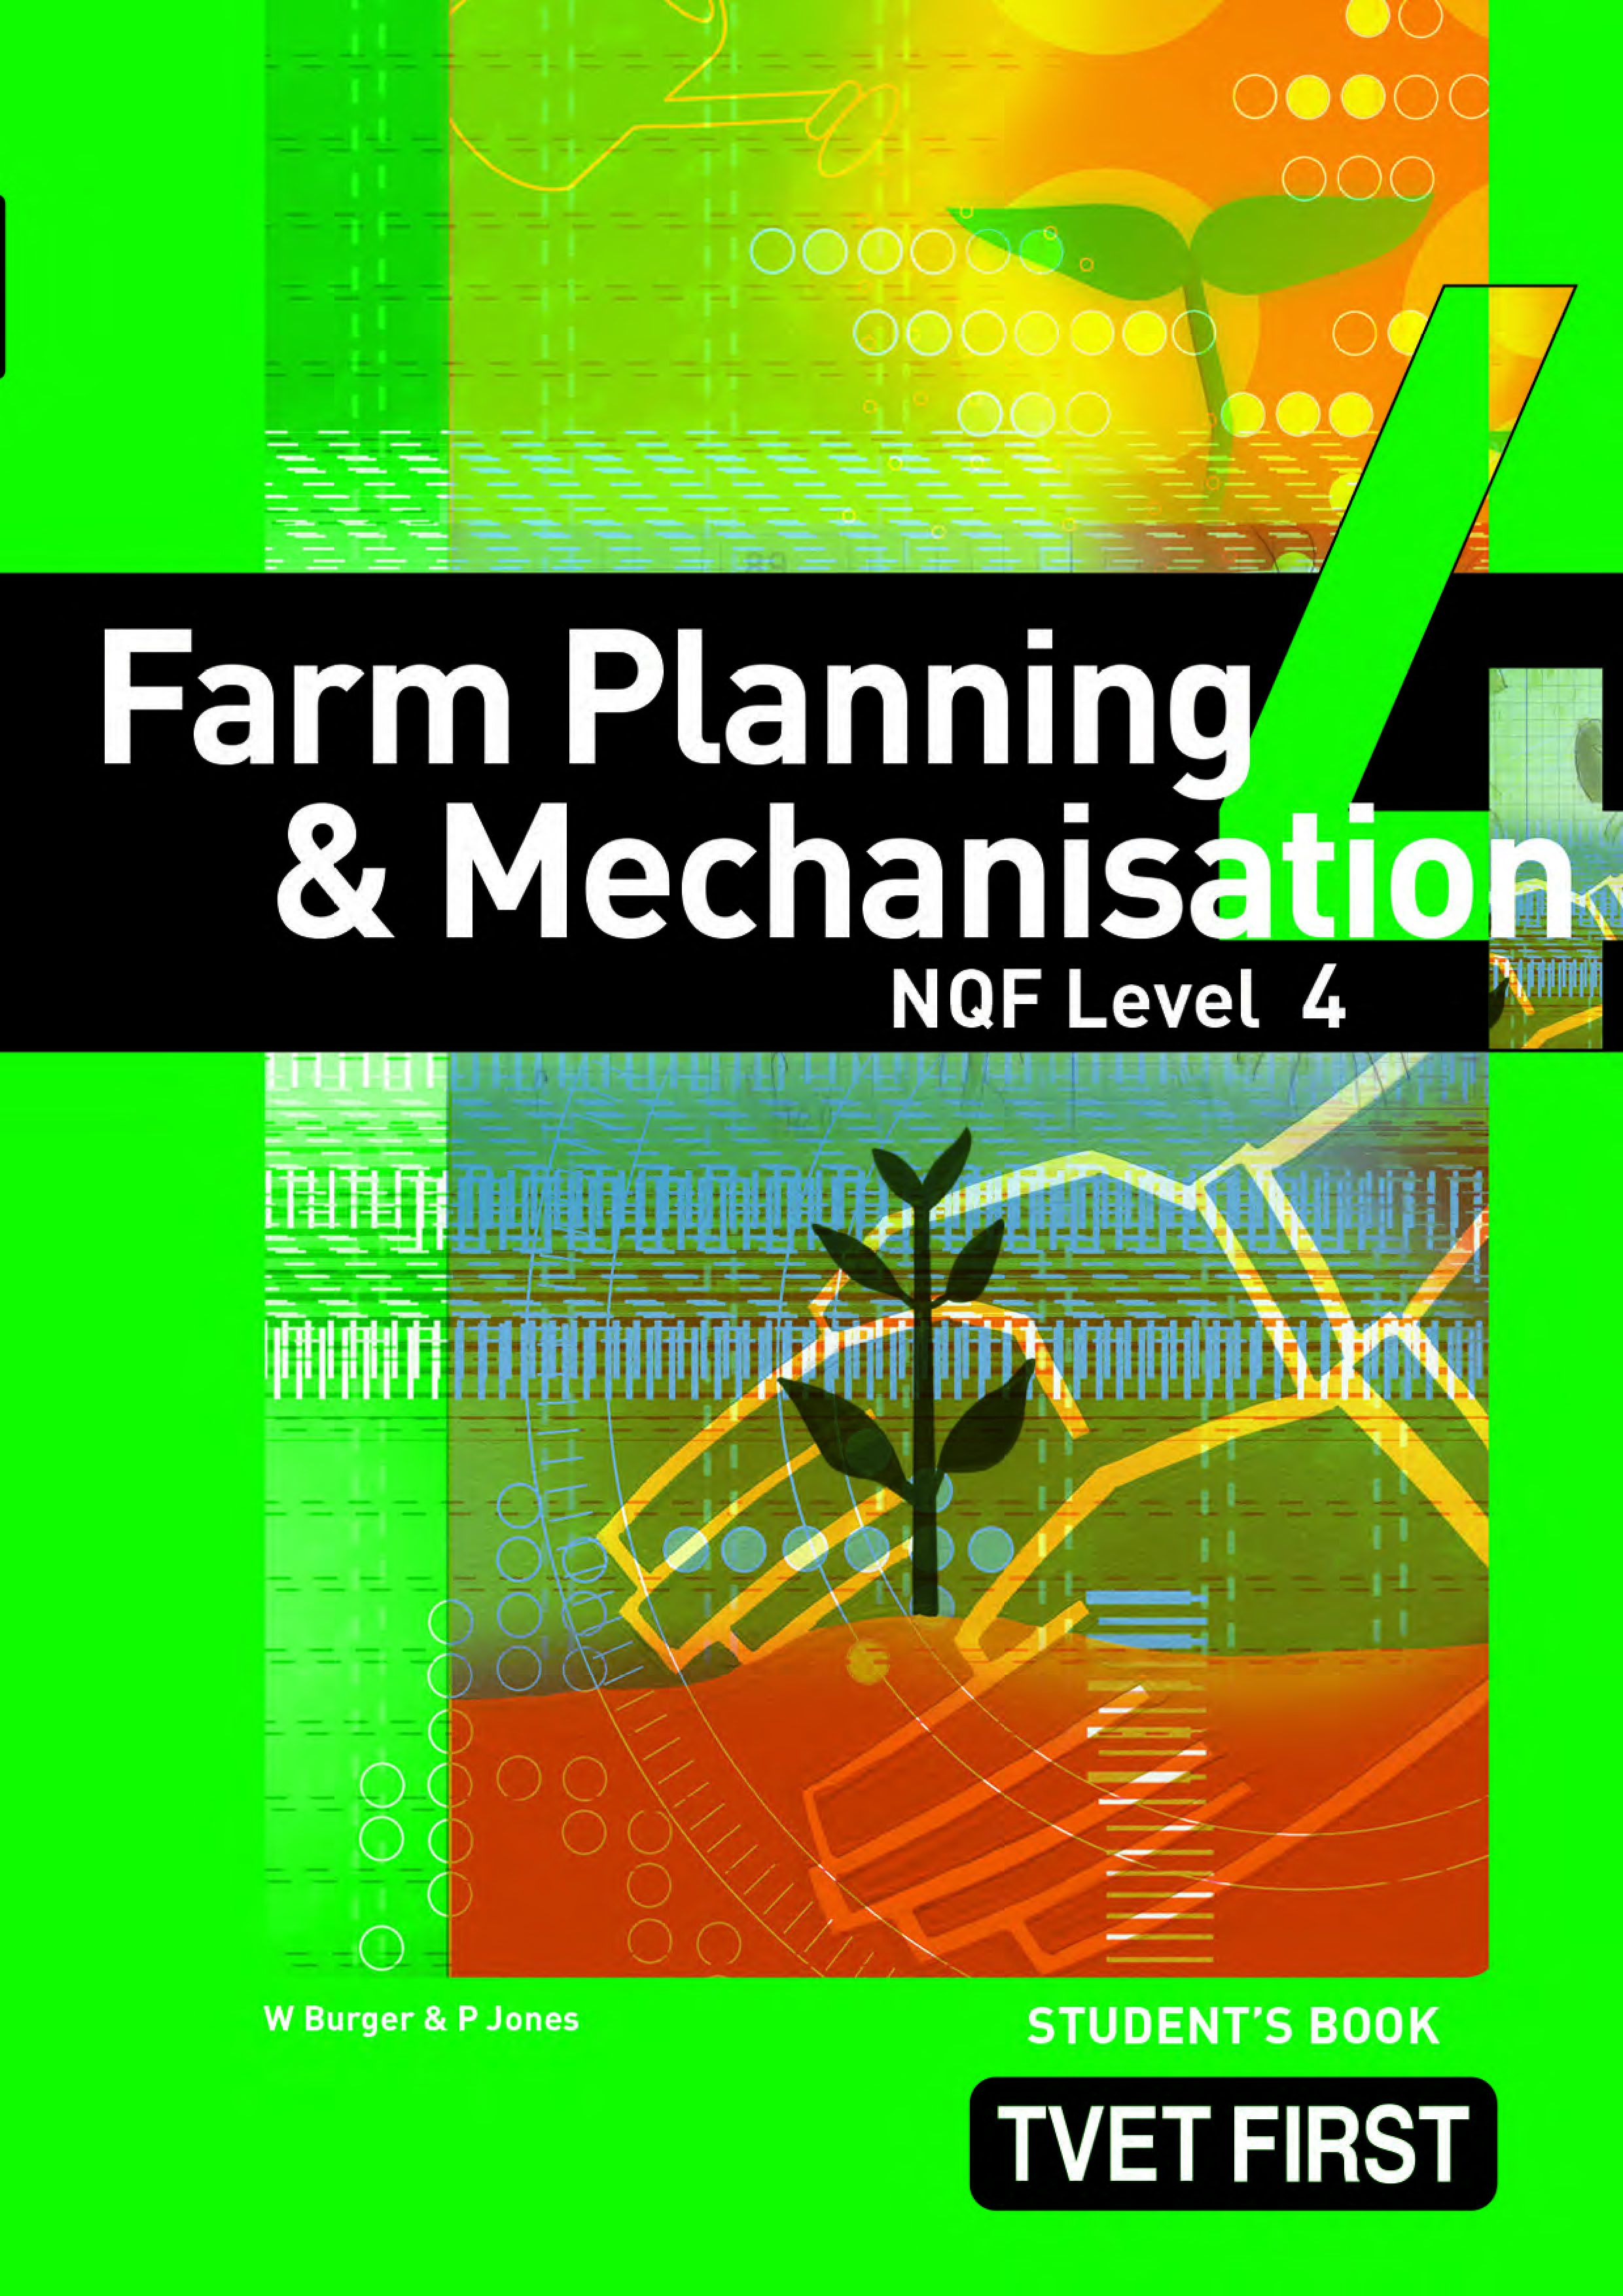 Picture of Farm Planning & Mechanisation NQF4 Student's Book